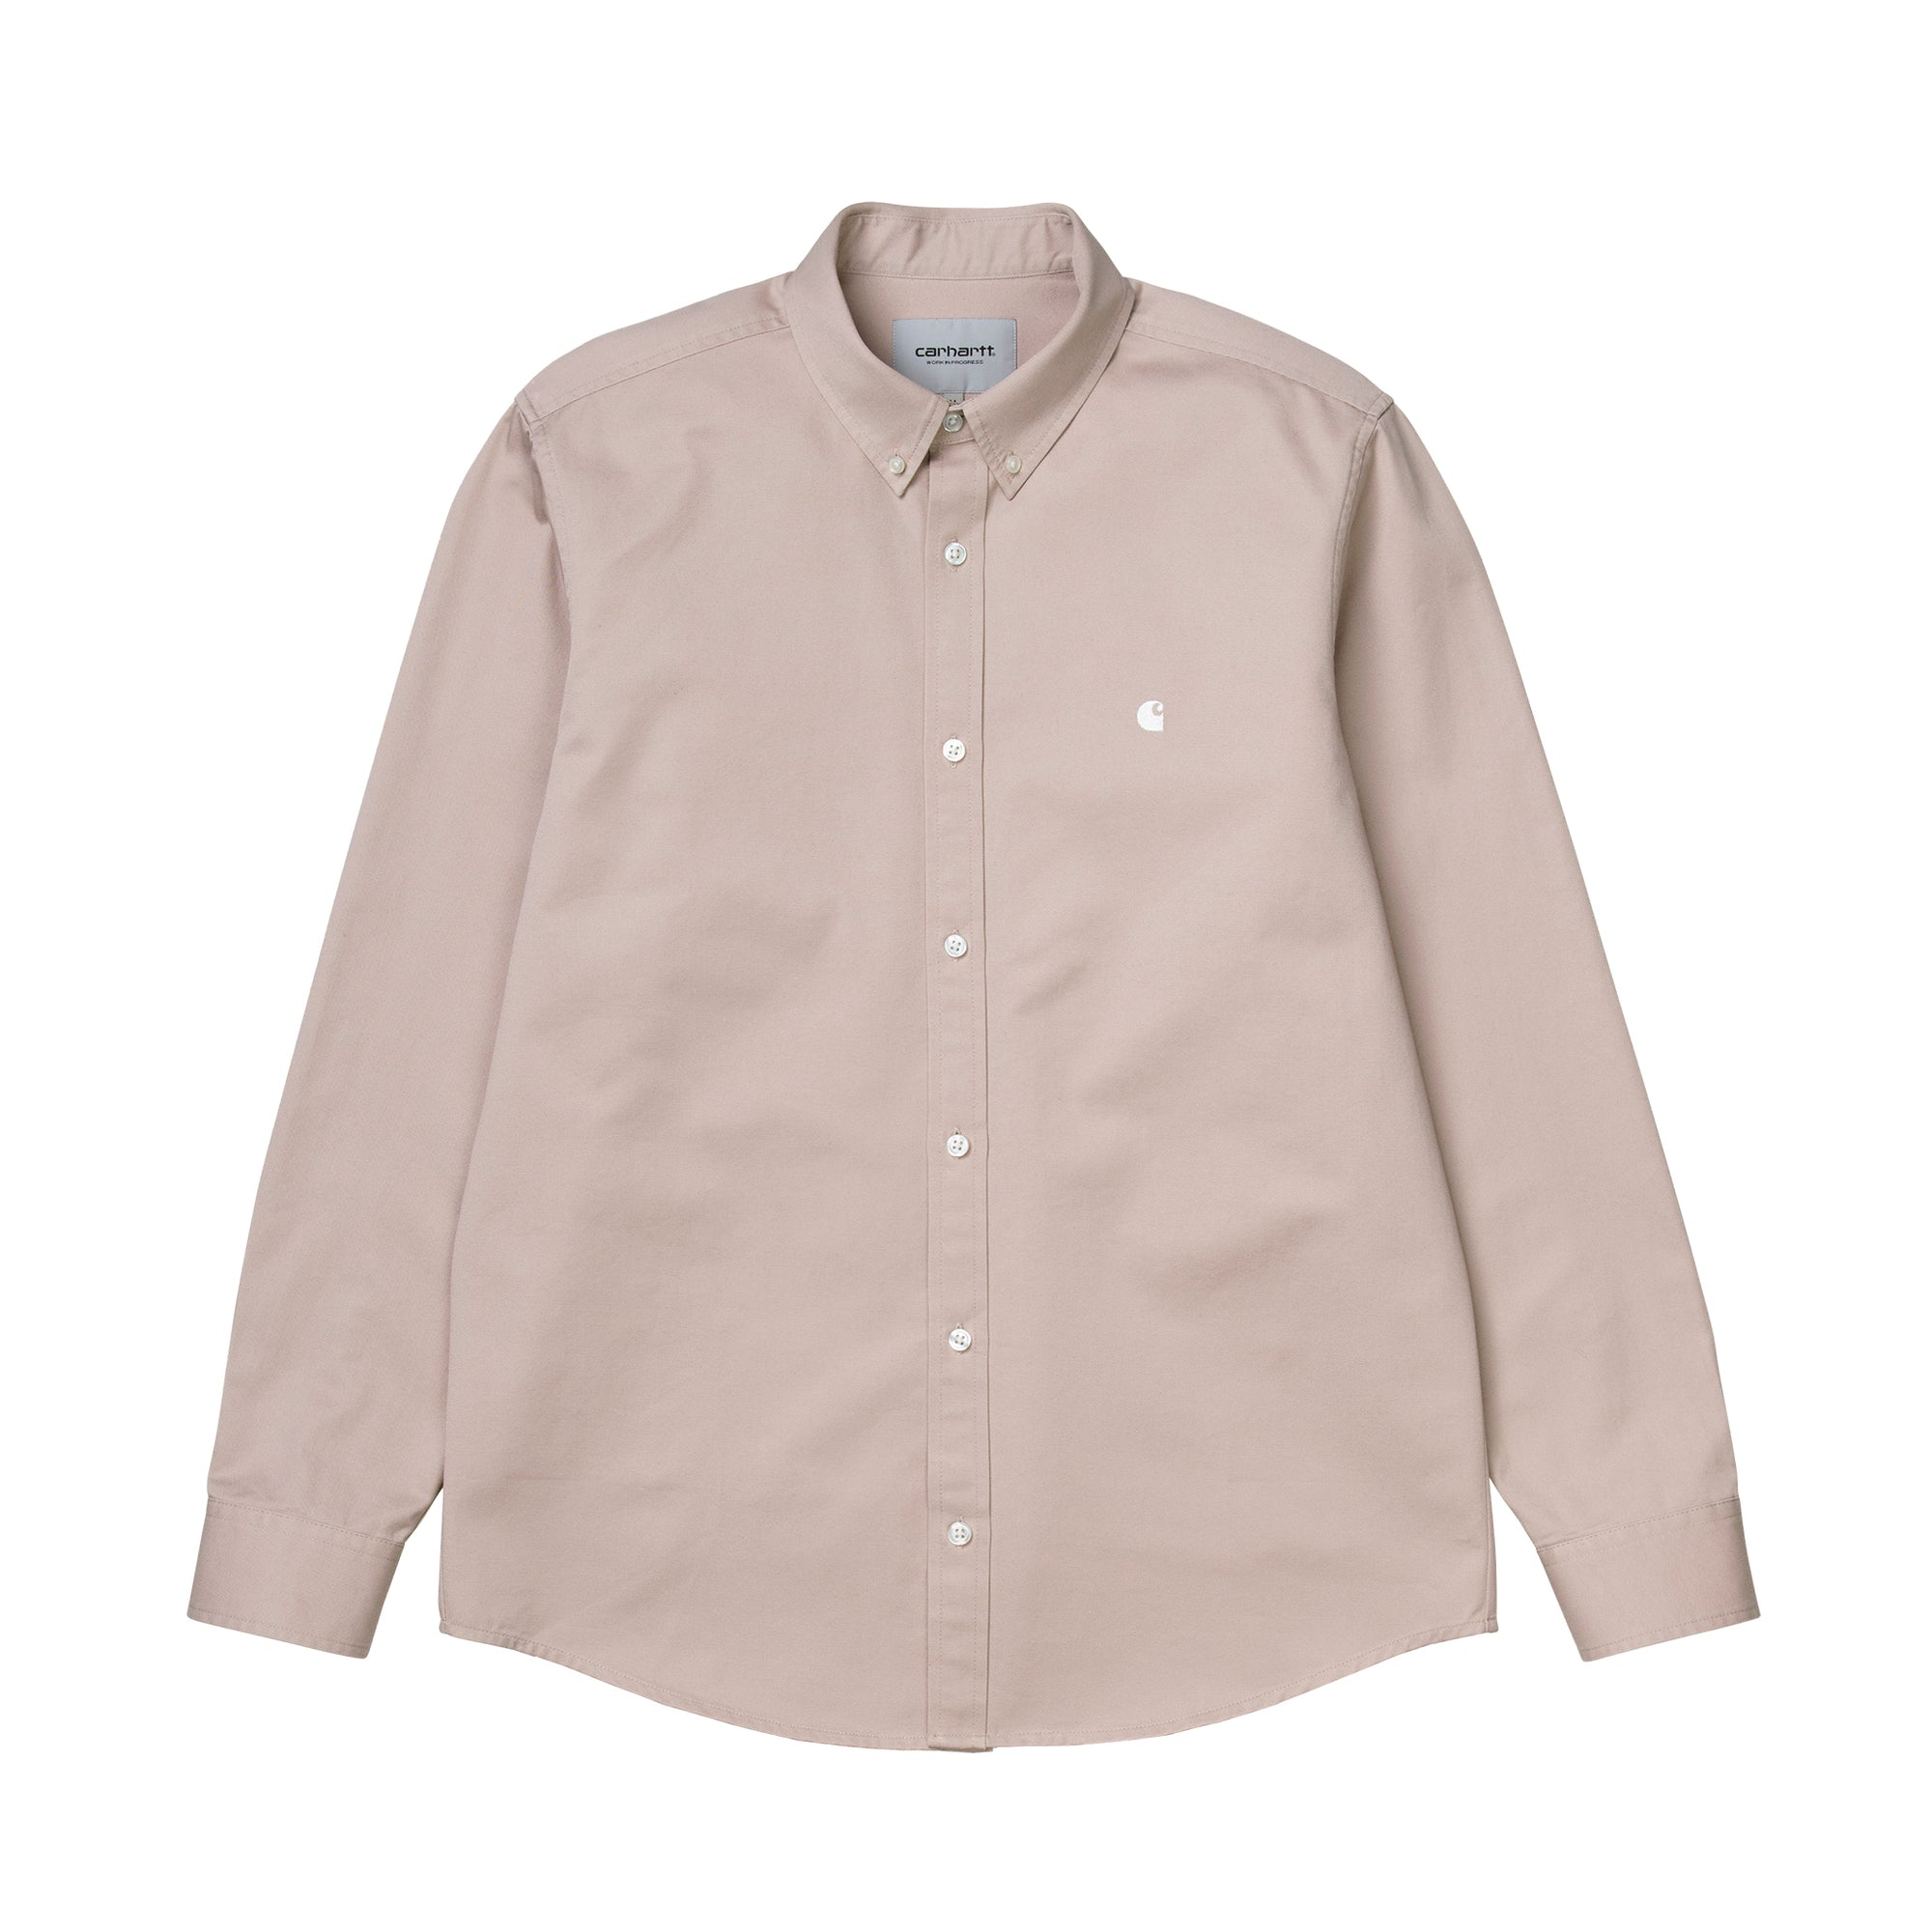 Carhartt WIP Madison Shirt: Glaze / Wax - The Union Project